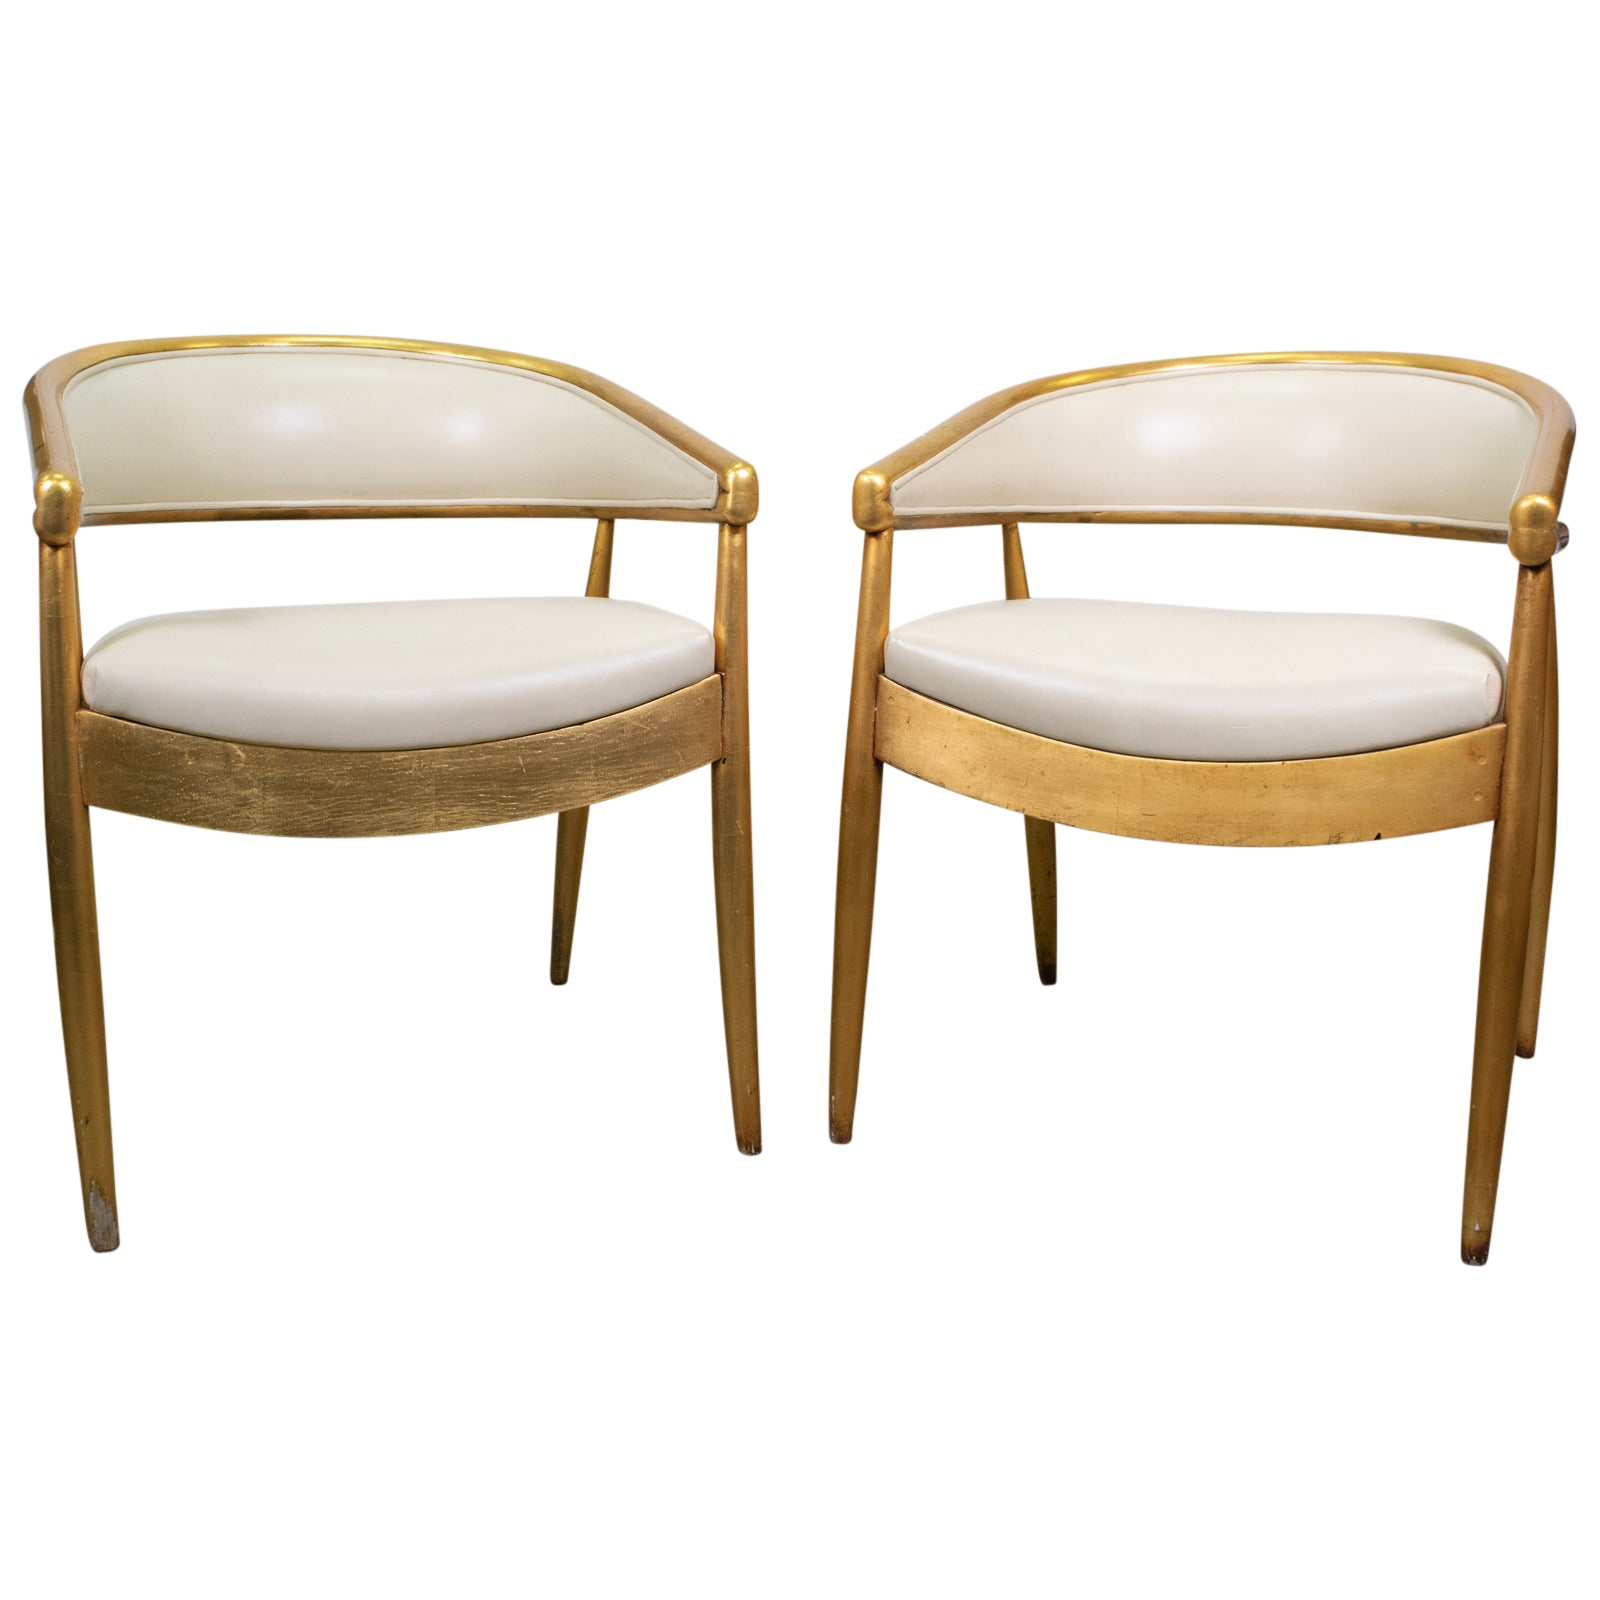 Pair of Giltwood Gaming Chairs by James Mont